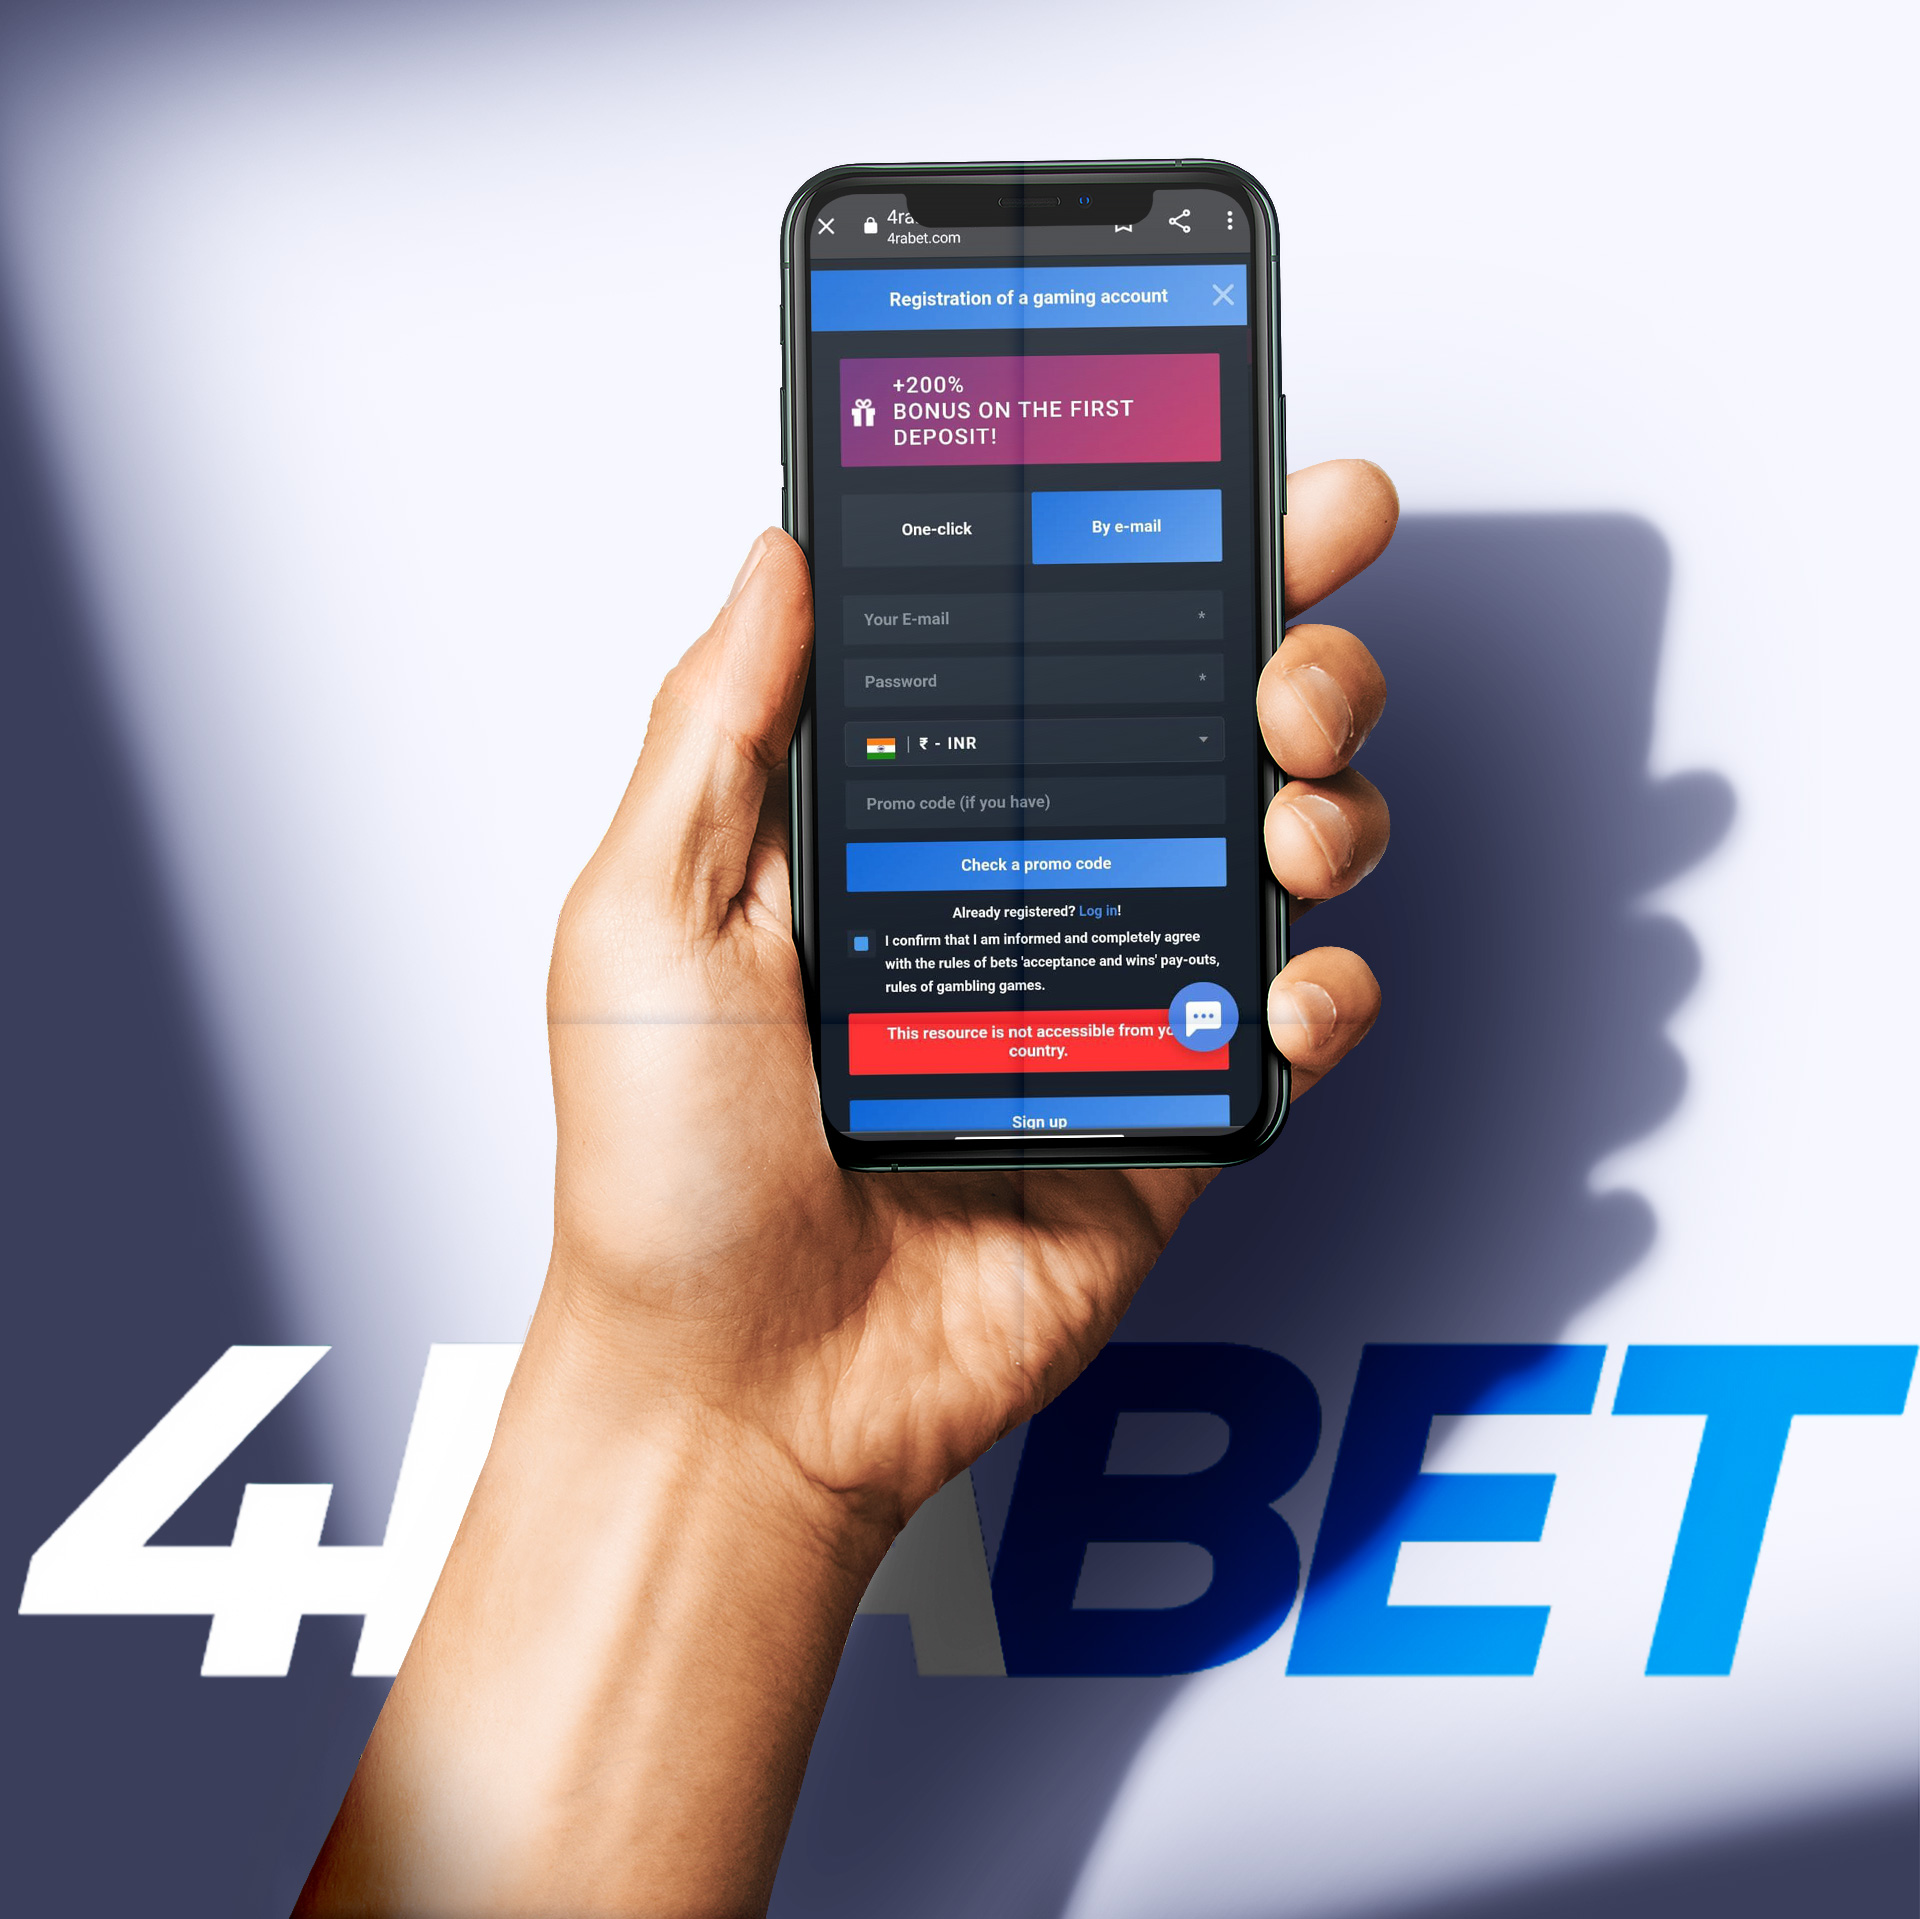 You can download the app on your iPhone or iPad and bet on cricket whenever you want.